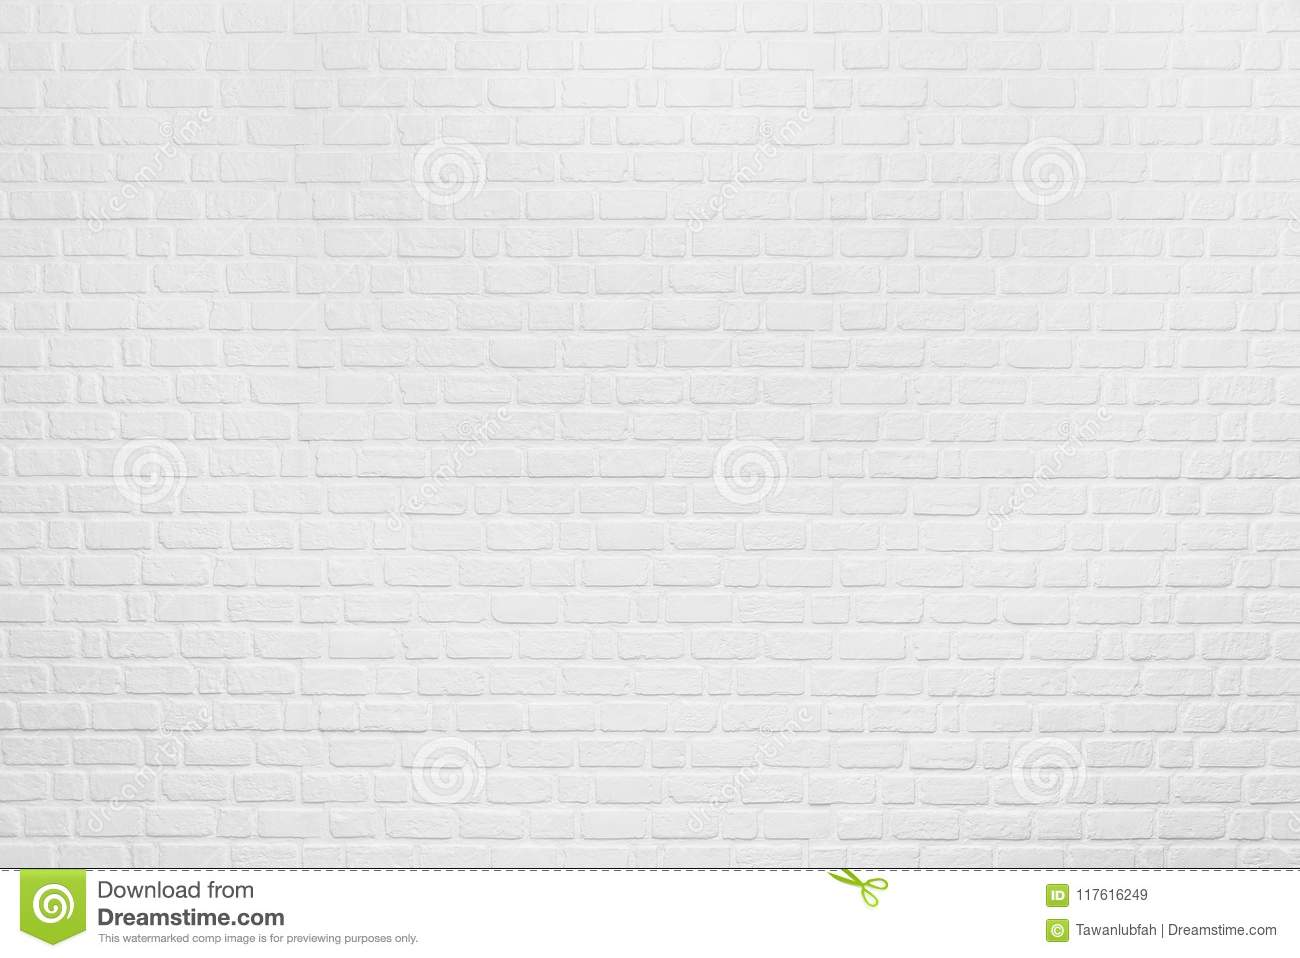 Abstract background from white clean brick pattern on wall. Vintage and retro backdrop. Picture for add text message. Backdrop